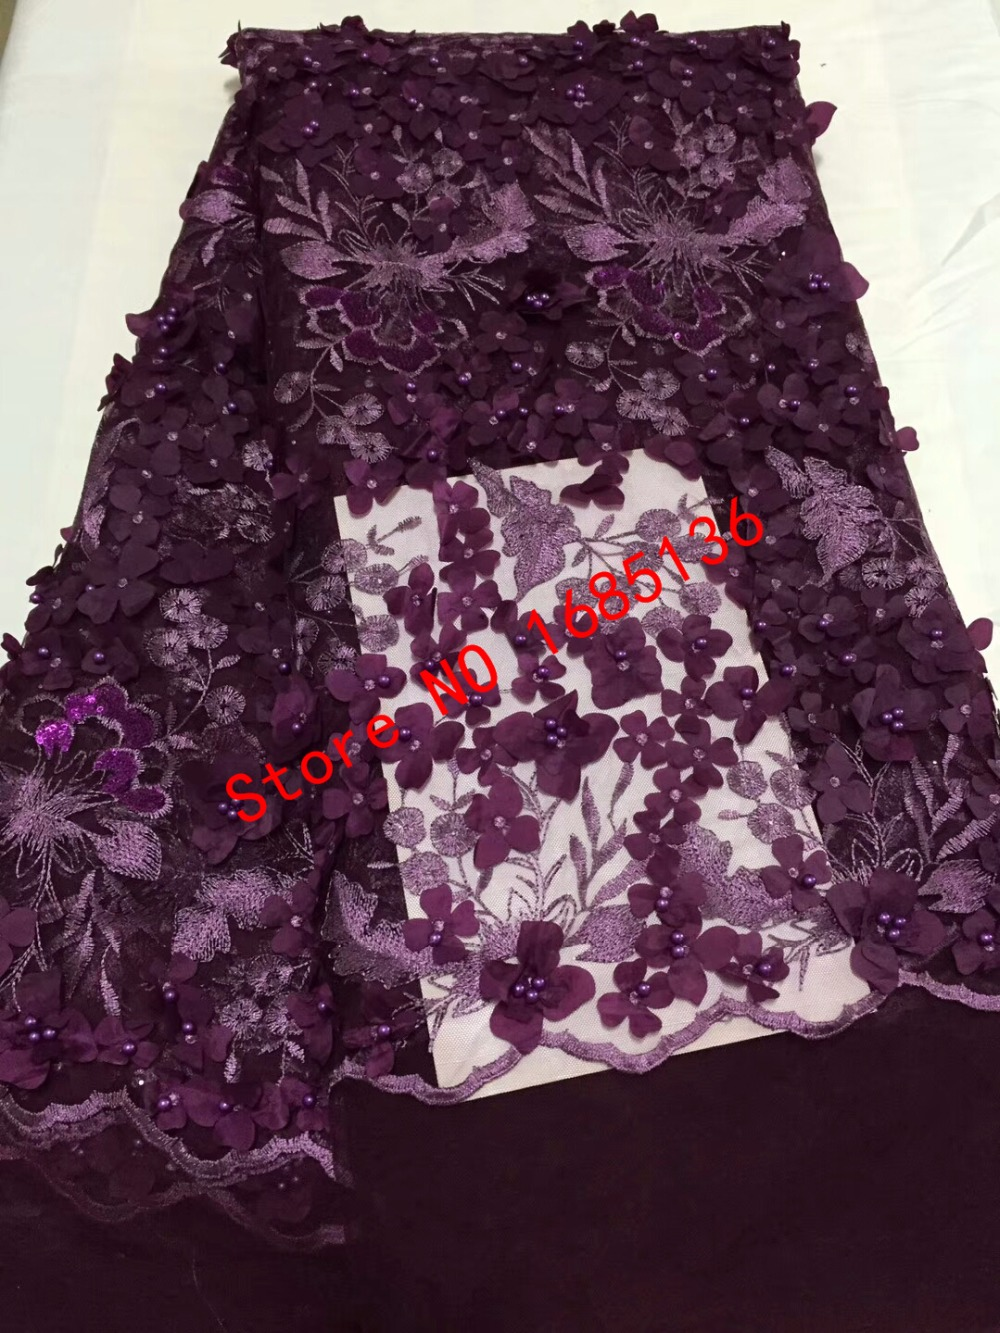 High-end Nigeria embroidery lace MYCD1688 purple plus 3D applique and Pearl African embroidery luxurious evening dress fabric High-end Nigeria embroidery lace MYCD1688 purple plus 3D applique and Pearl African embroidery luxurious evening dress fabric